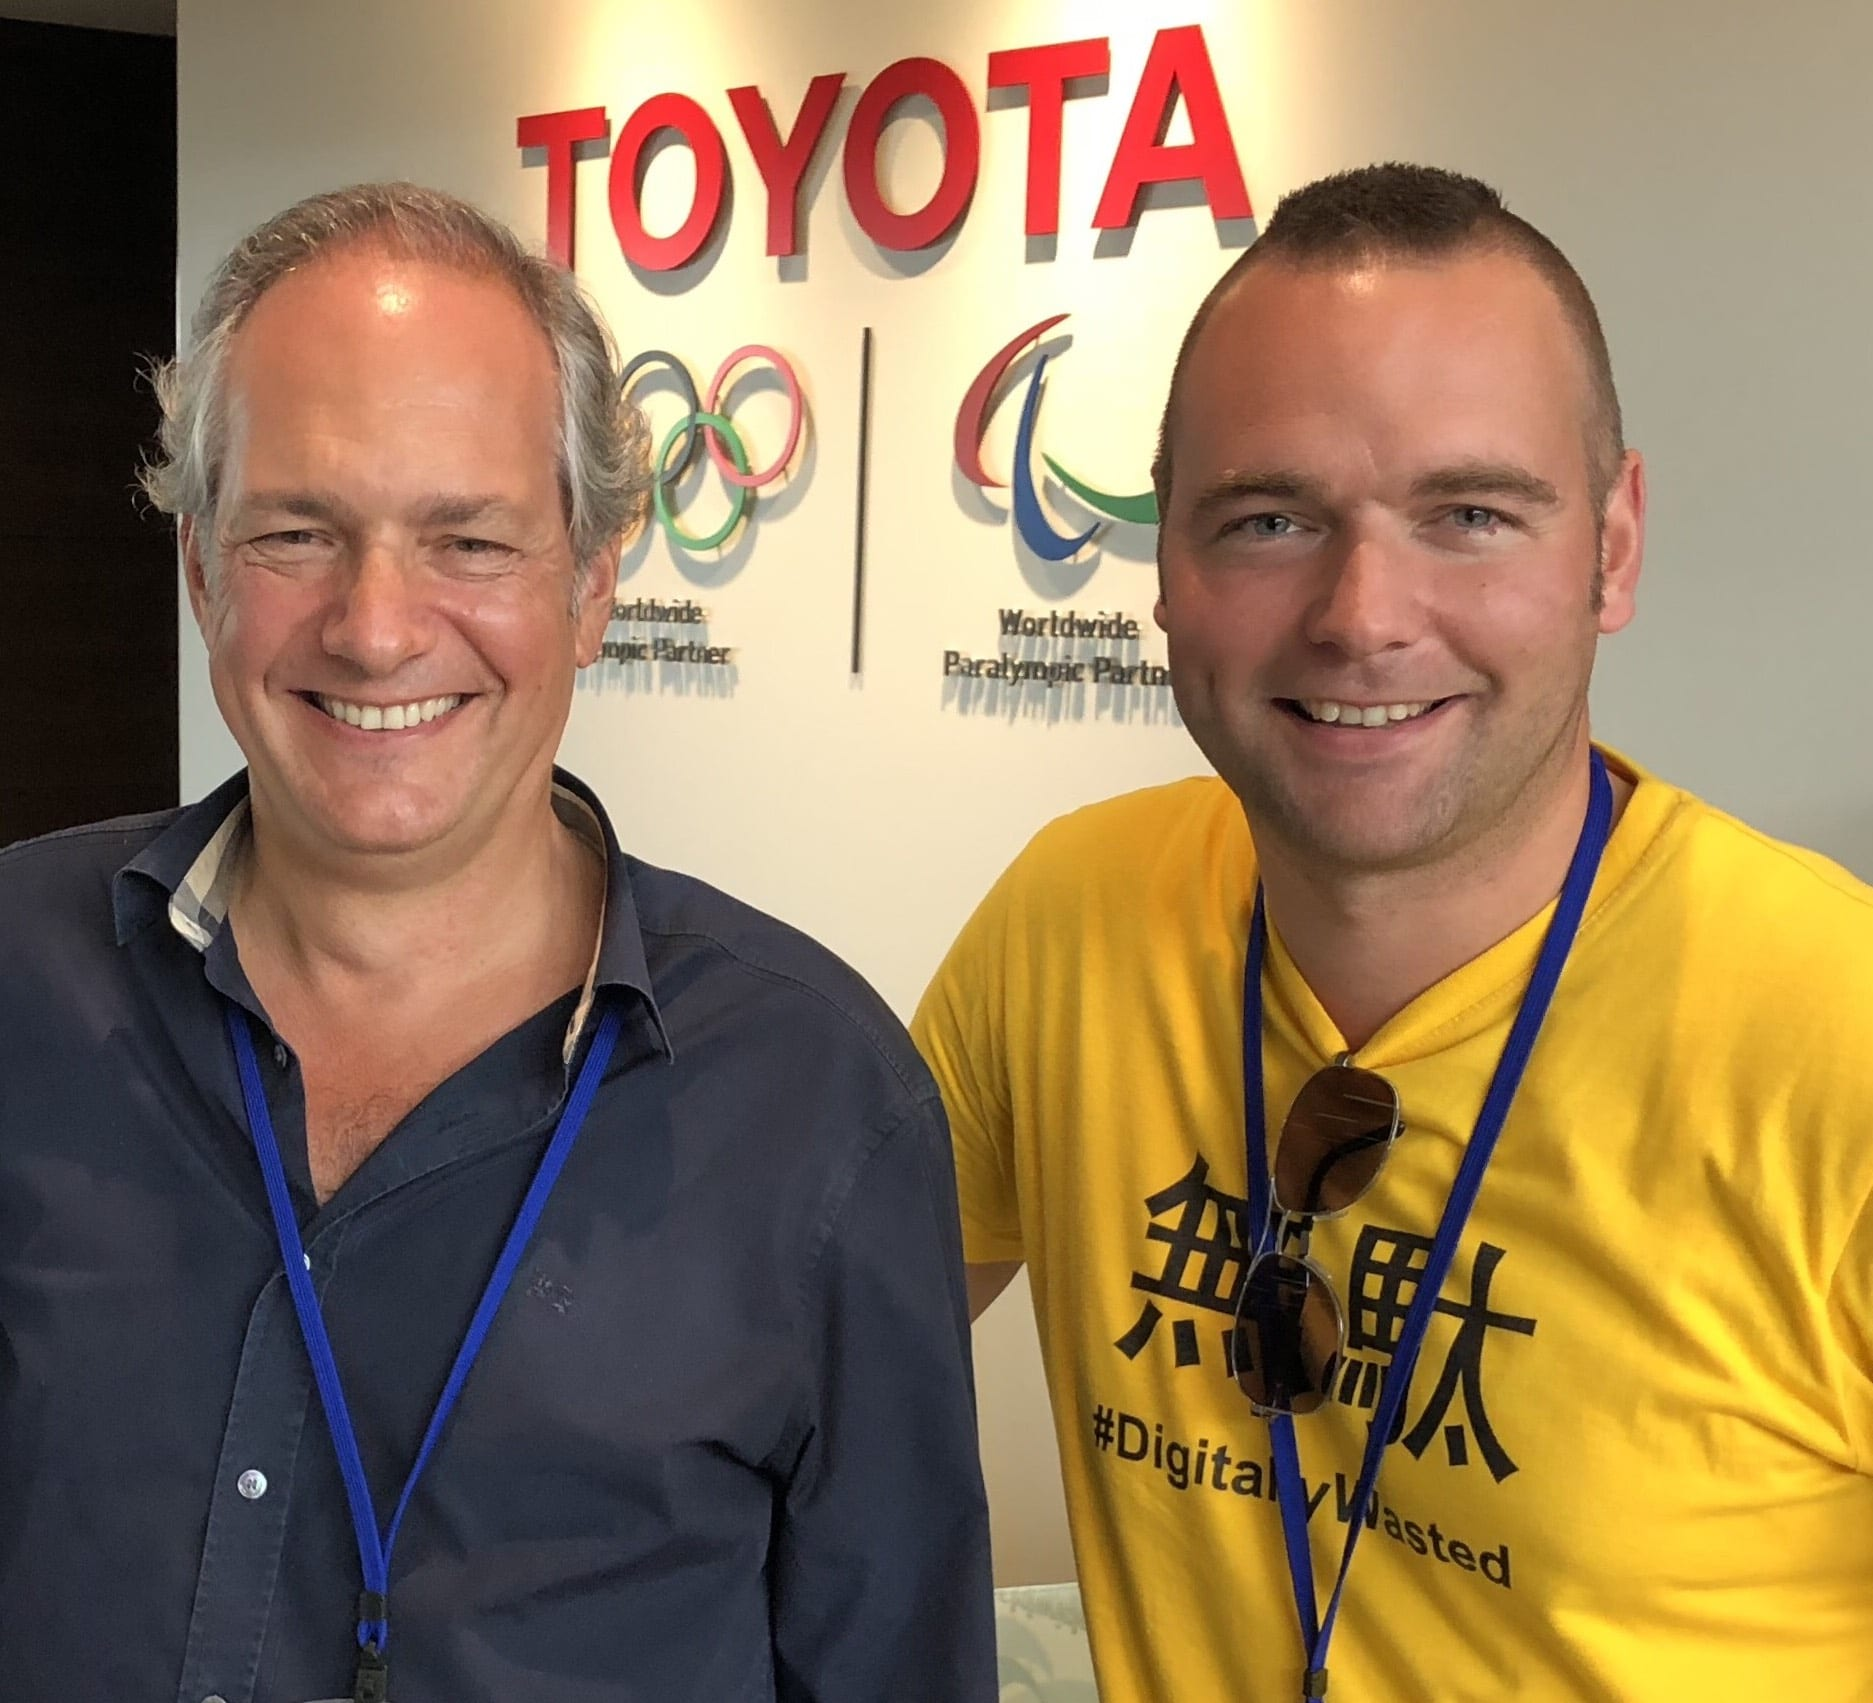 Michael Ballé and Daryl Powell visiting Toyota in Japan